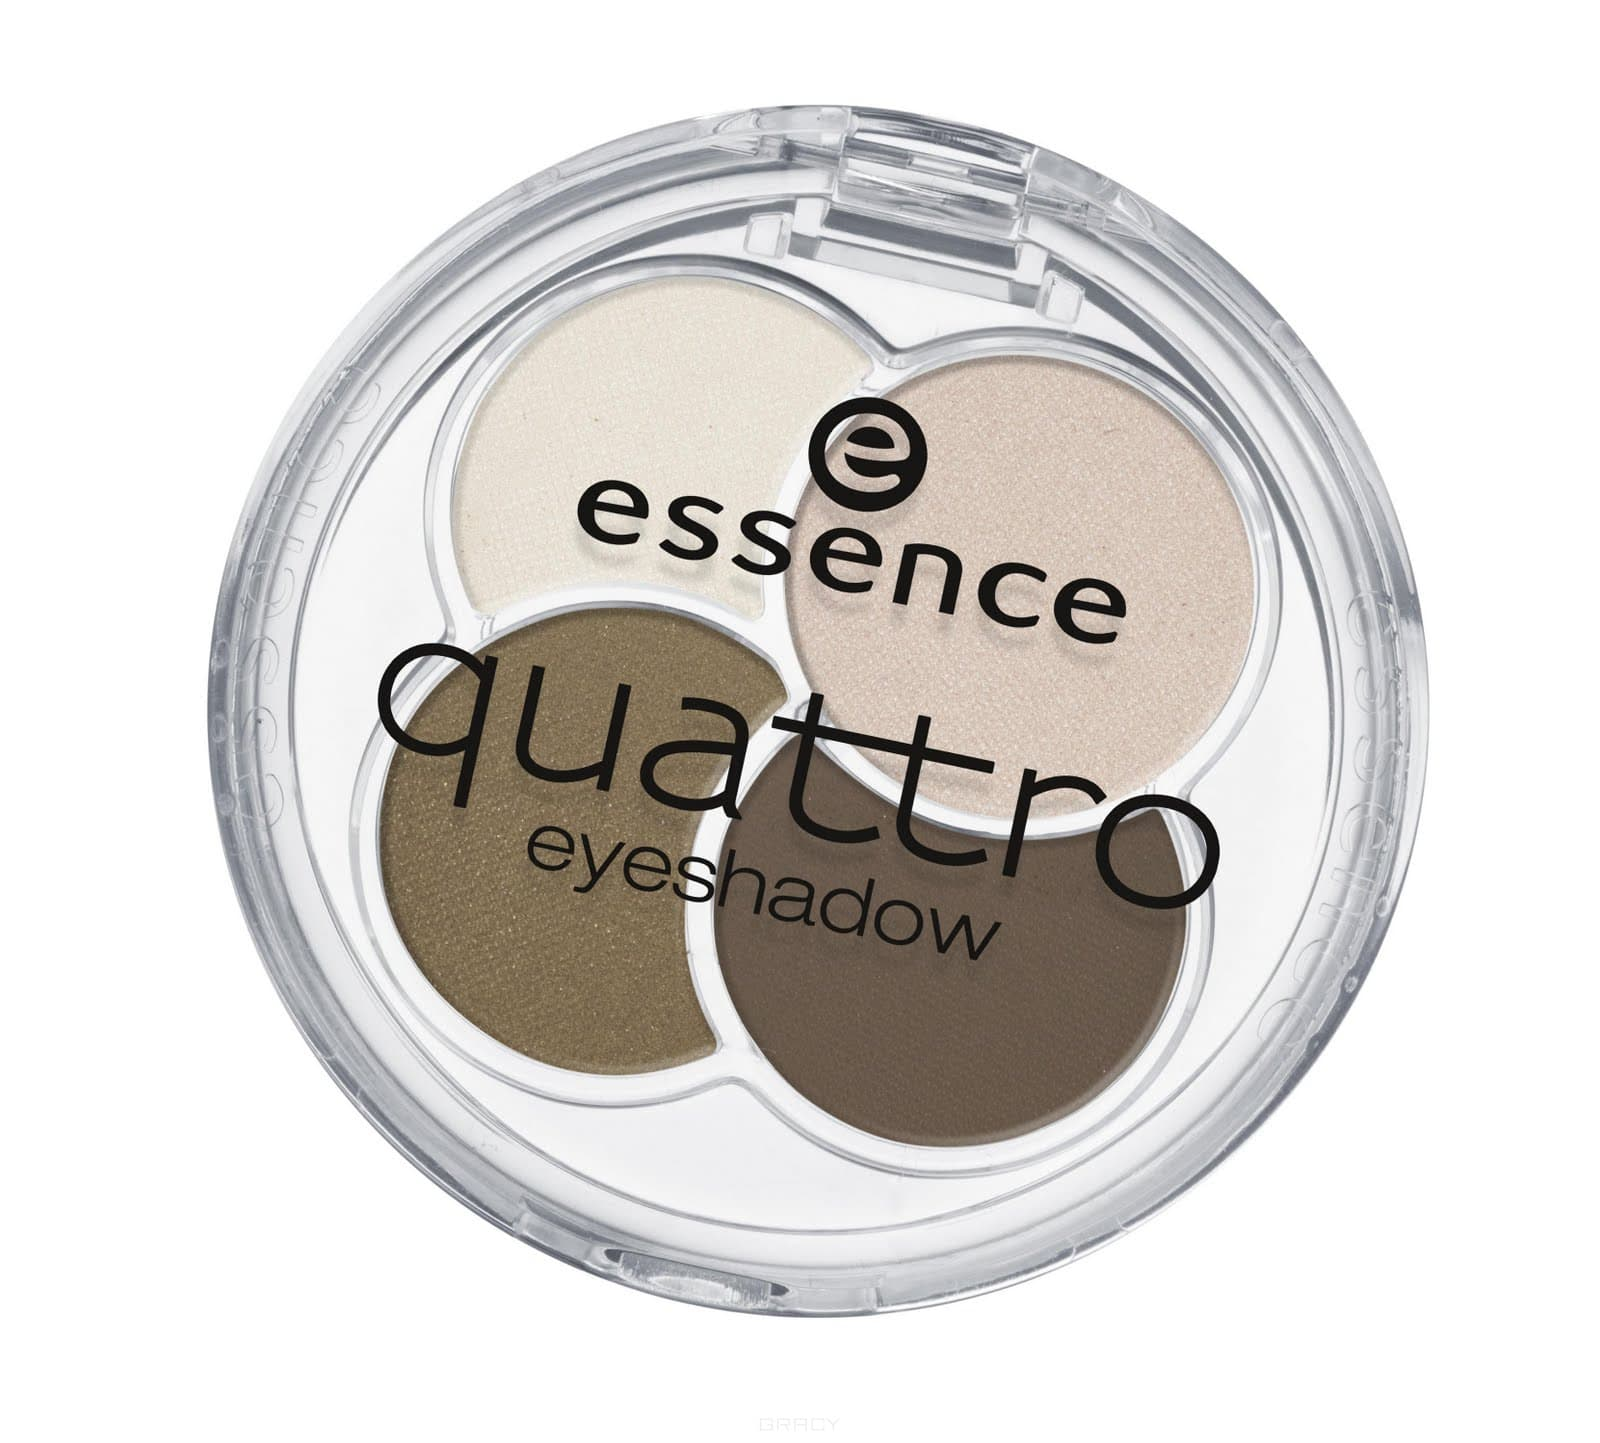 Essence Тени для век Quattro Eyeshadow, 5 гр, Тени для век Quattro Eyeshadow, 5 гр, т.07 Серо-коричневые, 5 гр тени для век essence live laugh celebrate eyeshadow 07 цвет 07 the sun is shining variant hex name d6ac7a